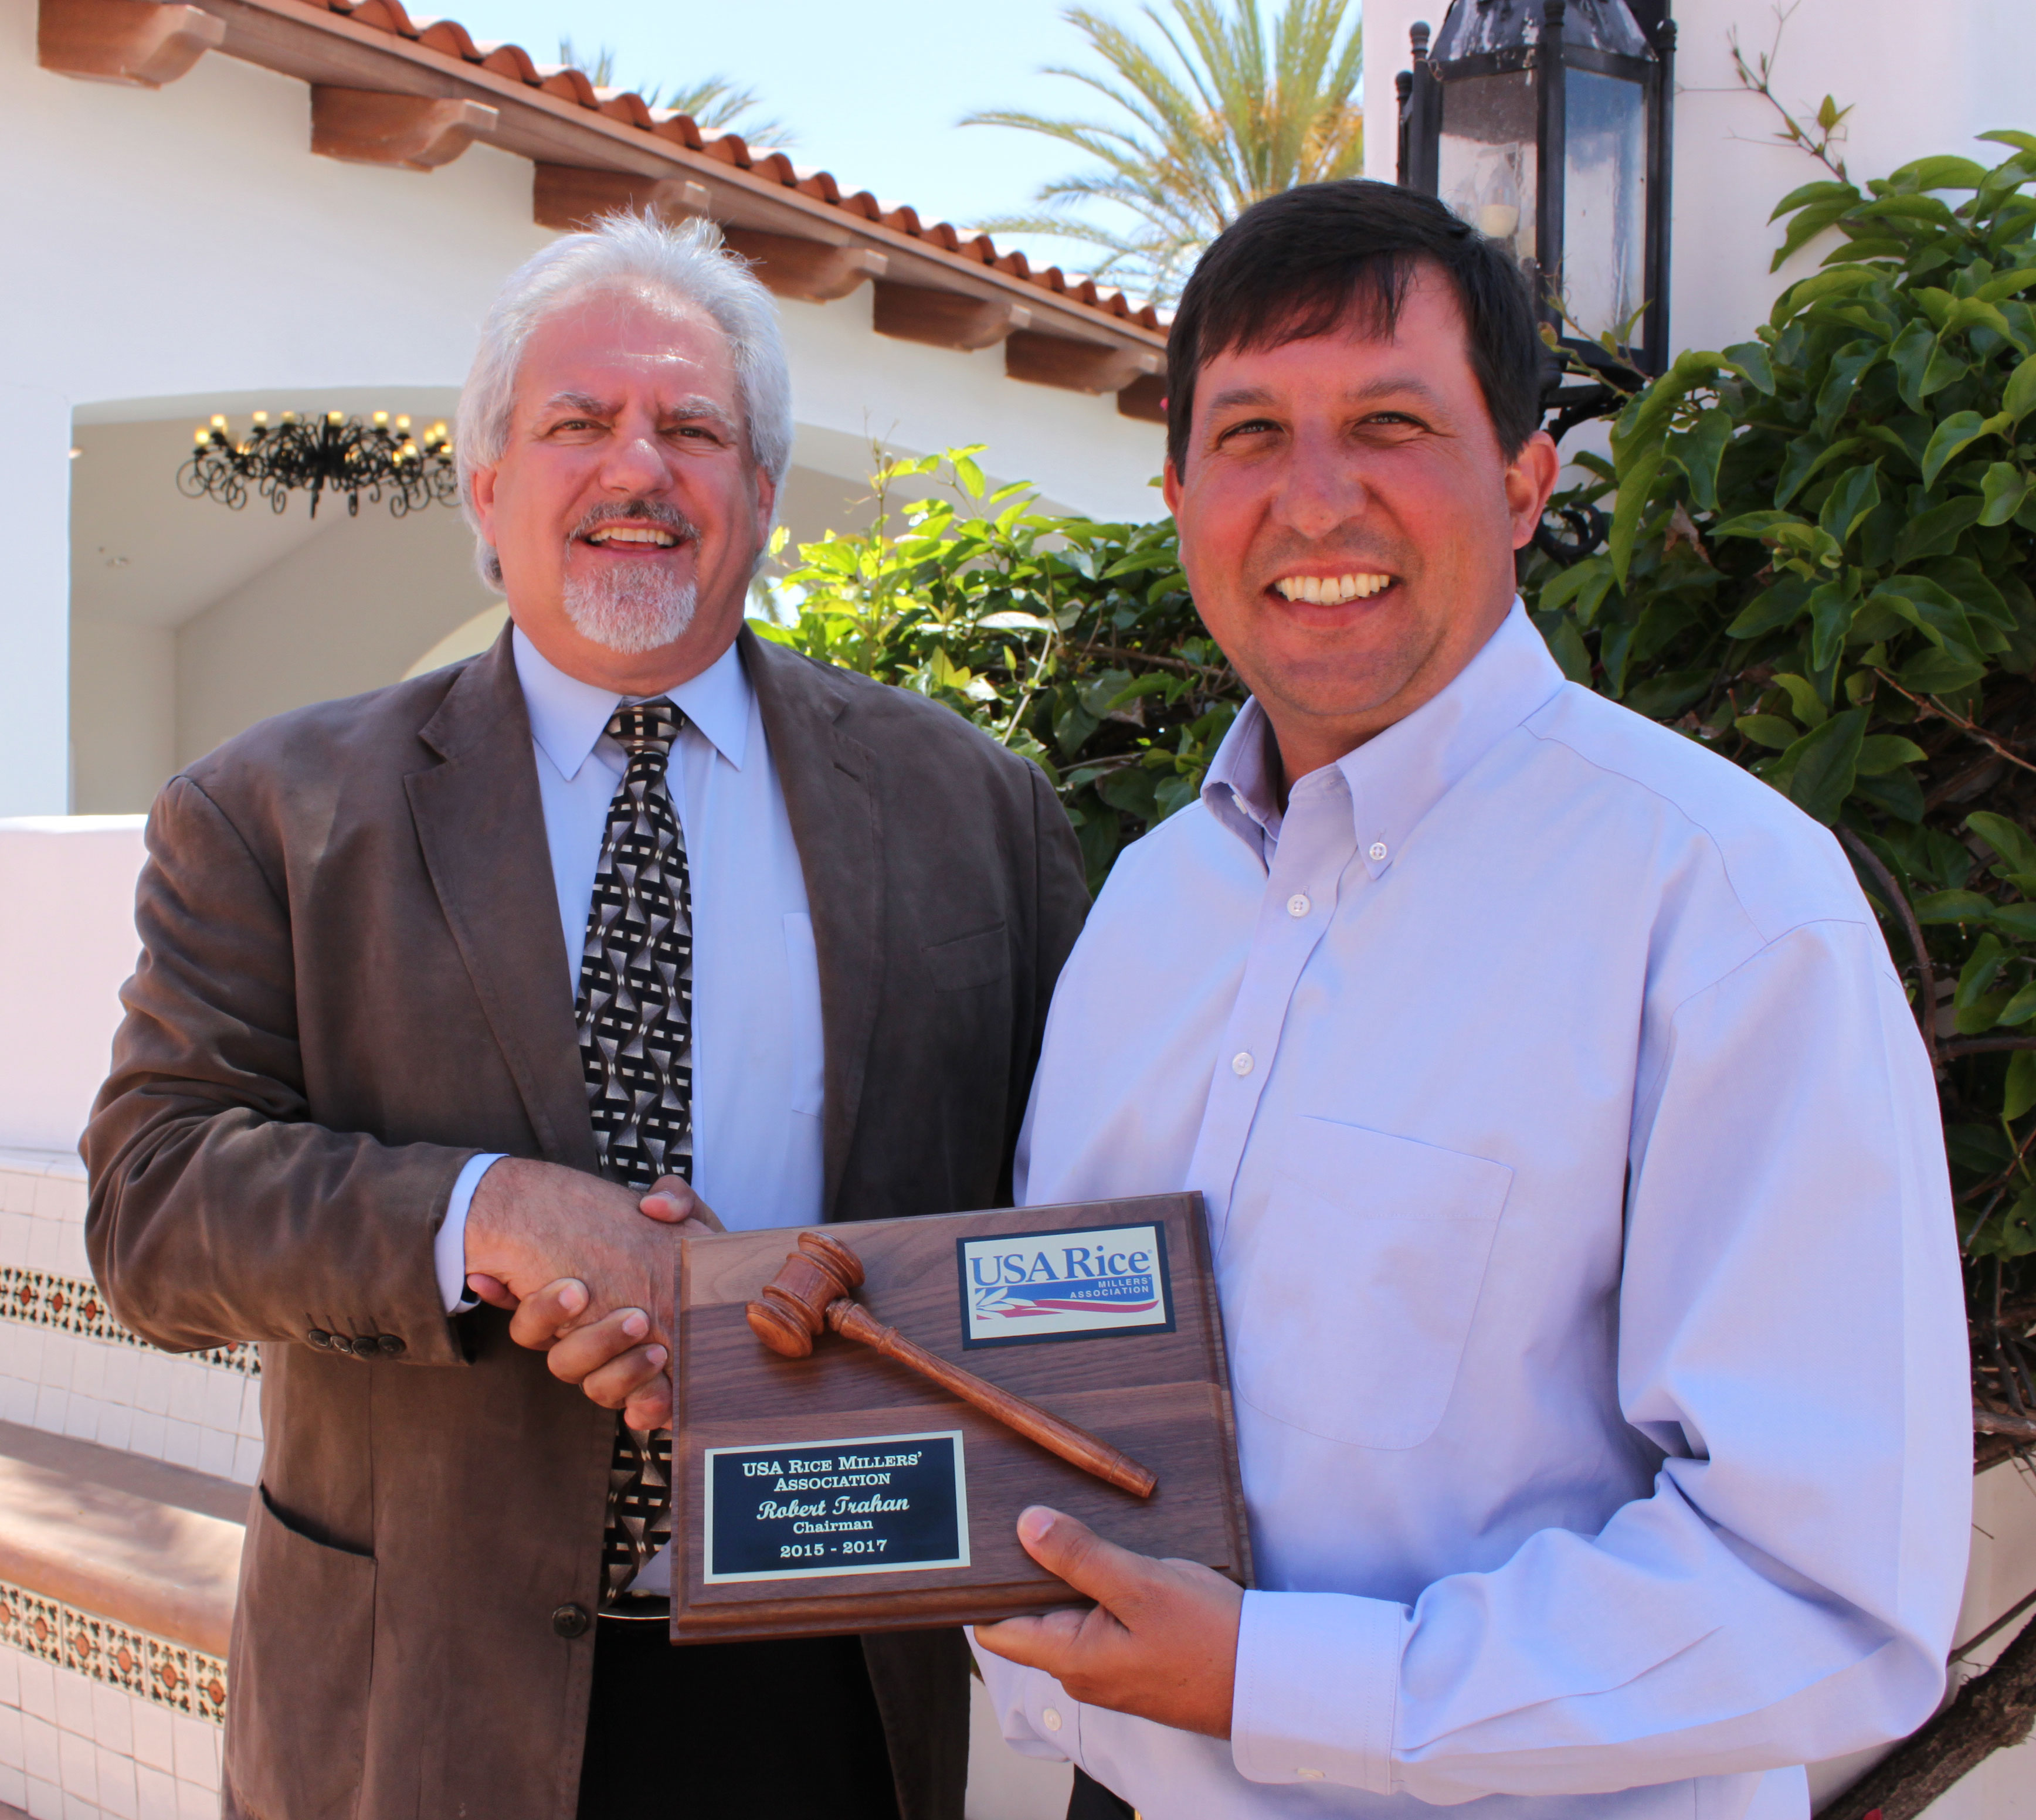 CA miller Alex Balafoutis shakes hands with and gives plaque to LA miller Robert Trahan